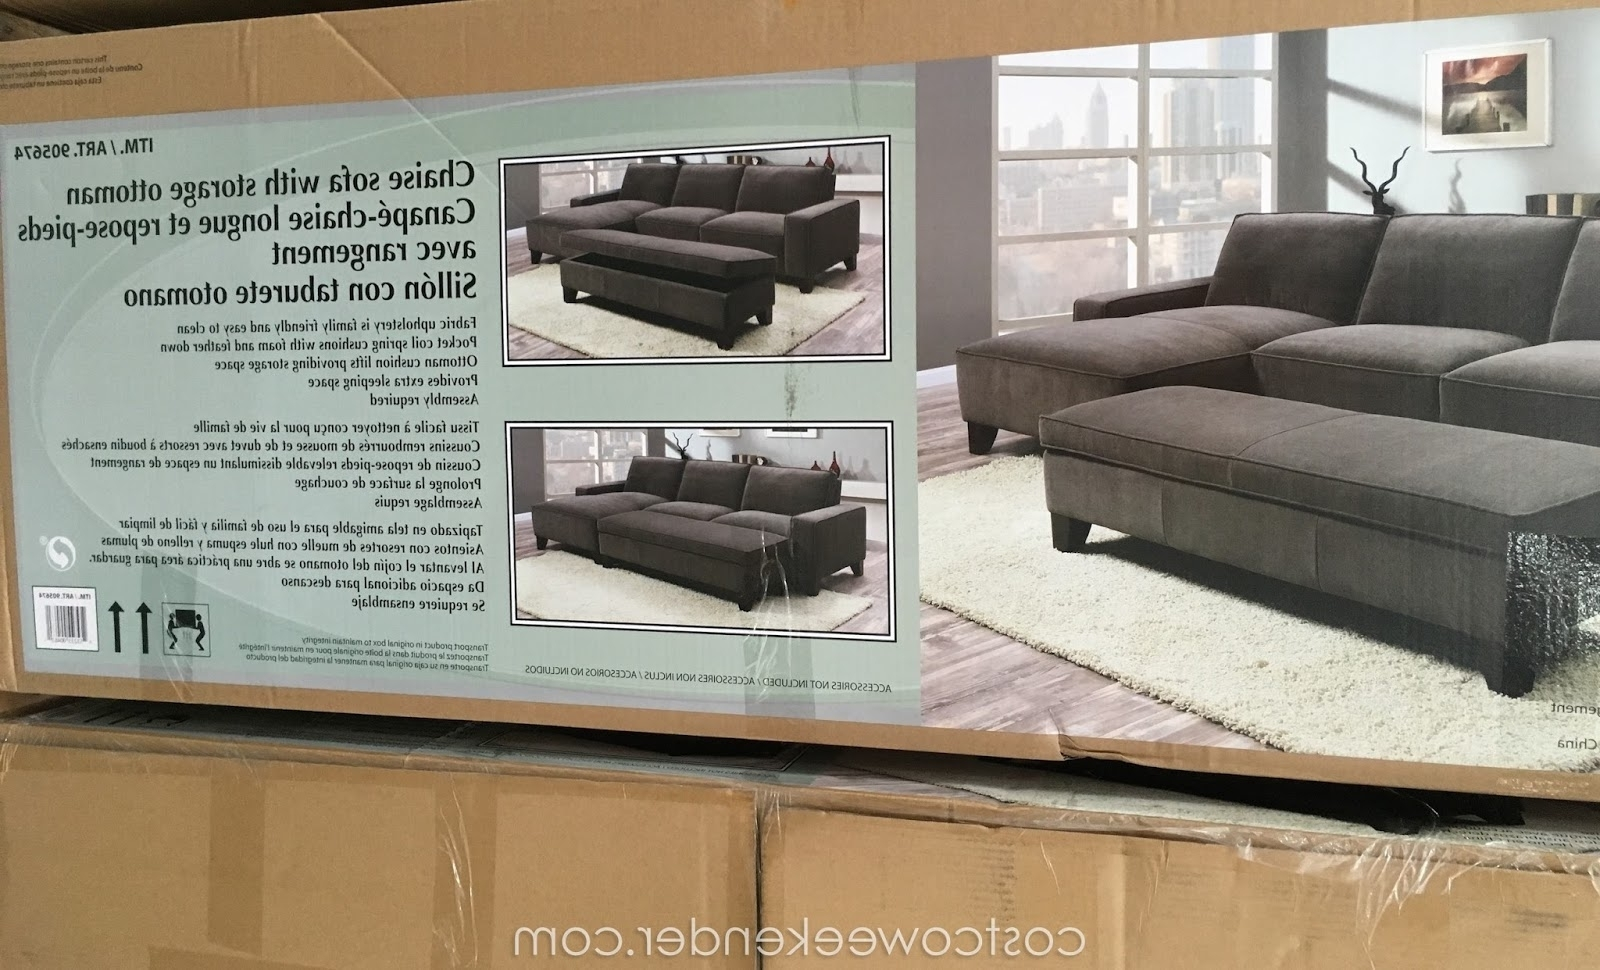 Sectional Sofa Design: Elegant Sectional Sofa With Chaise Costco In 2018 Costco Chaises (View 14 of 15)